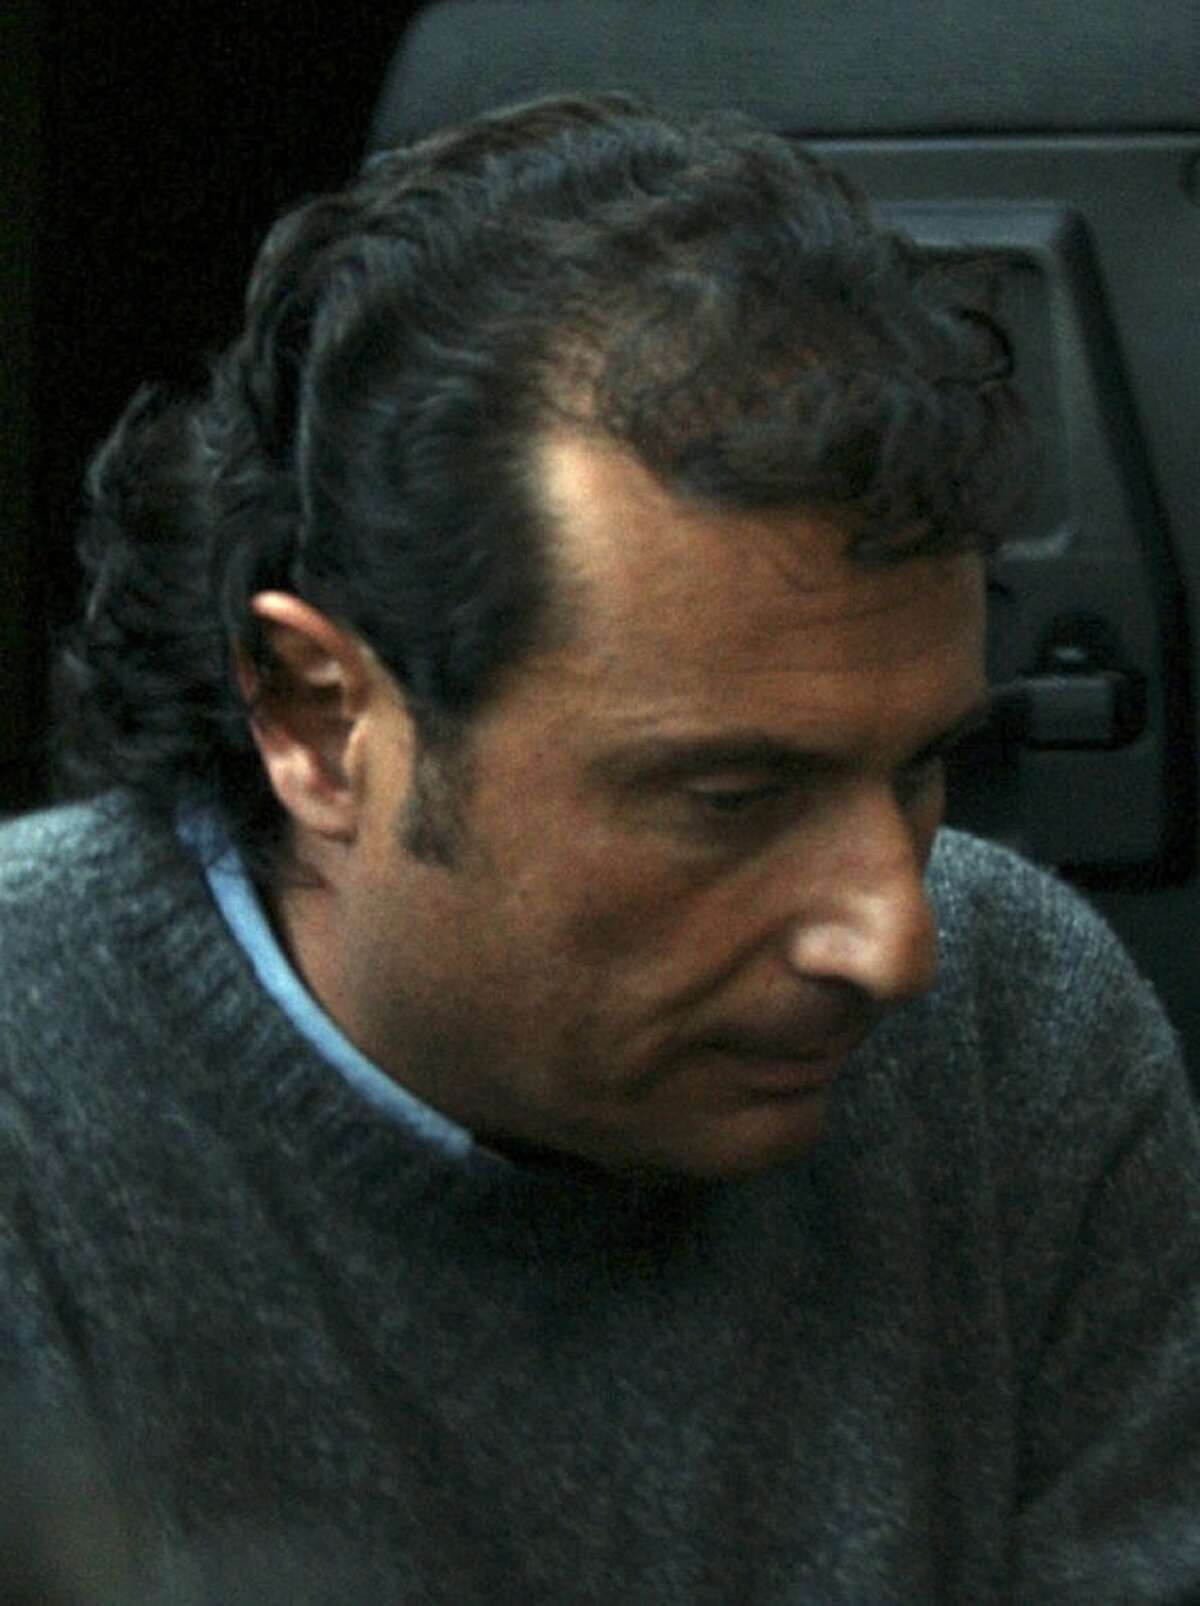 Francesco Schettino, the captain of the Costa Concordia cruise ship that run aground the tiny Island of Giglio last Friday, leaves the Grosseto court, Italy, Tuesday.